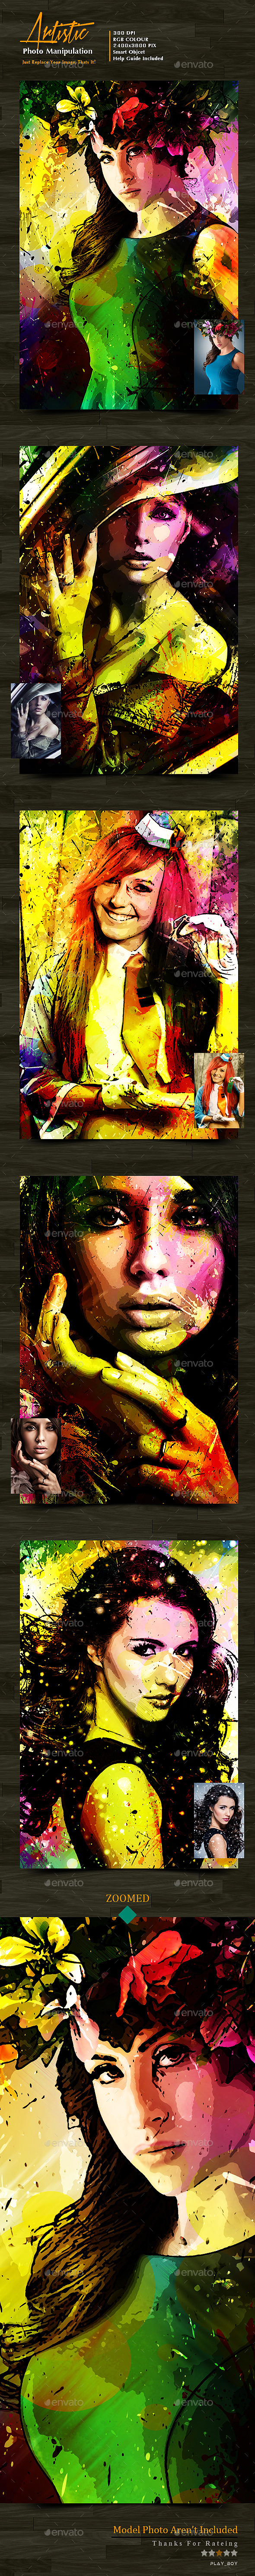 Artistic Photo Manipulation Template - Photo Templates Graphics